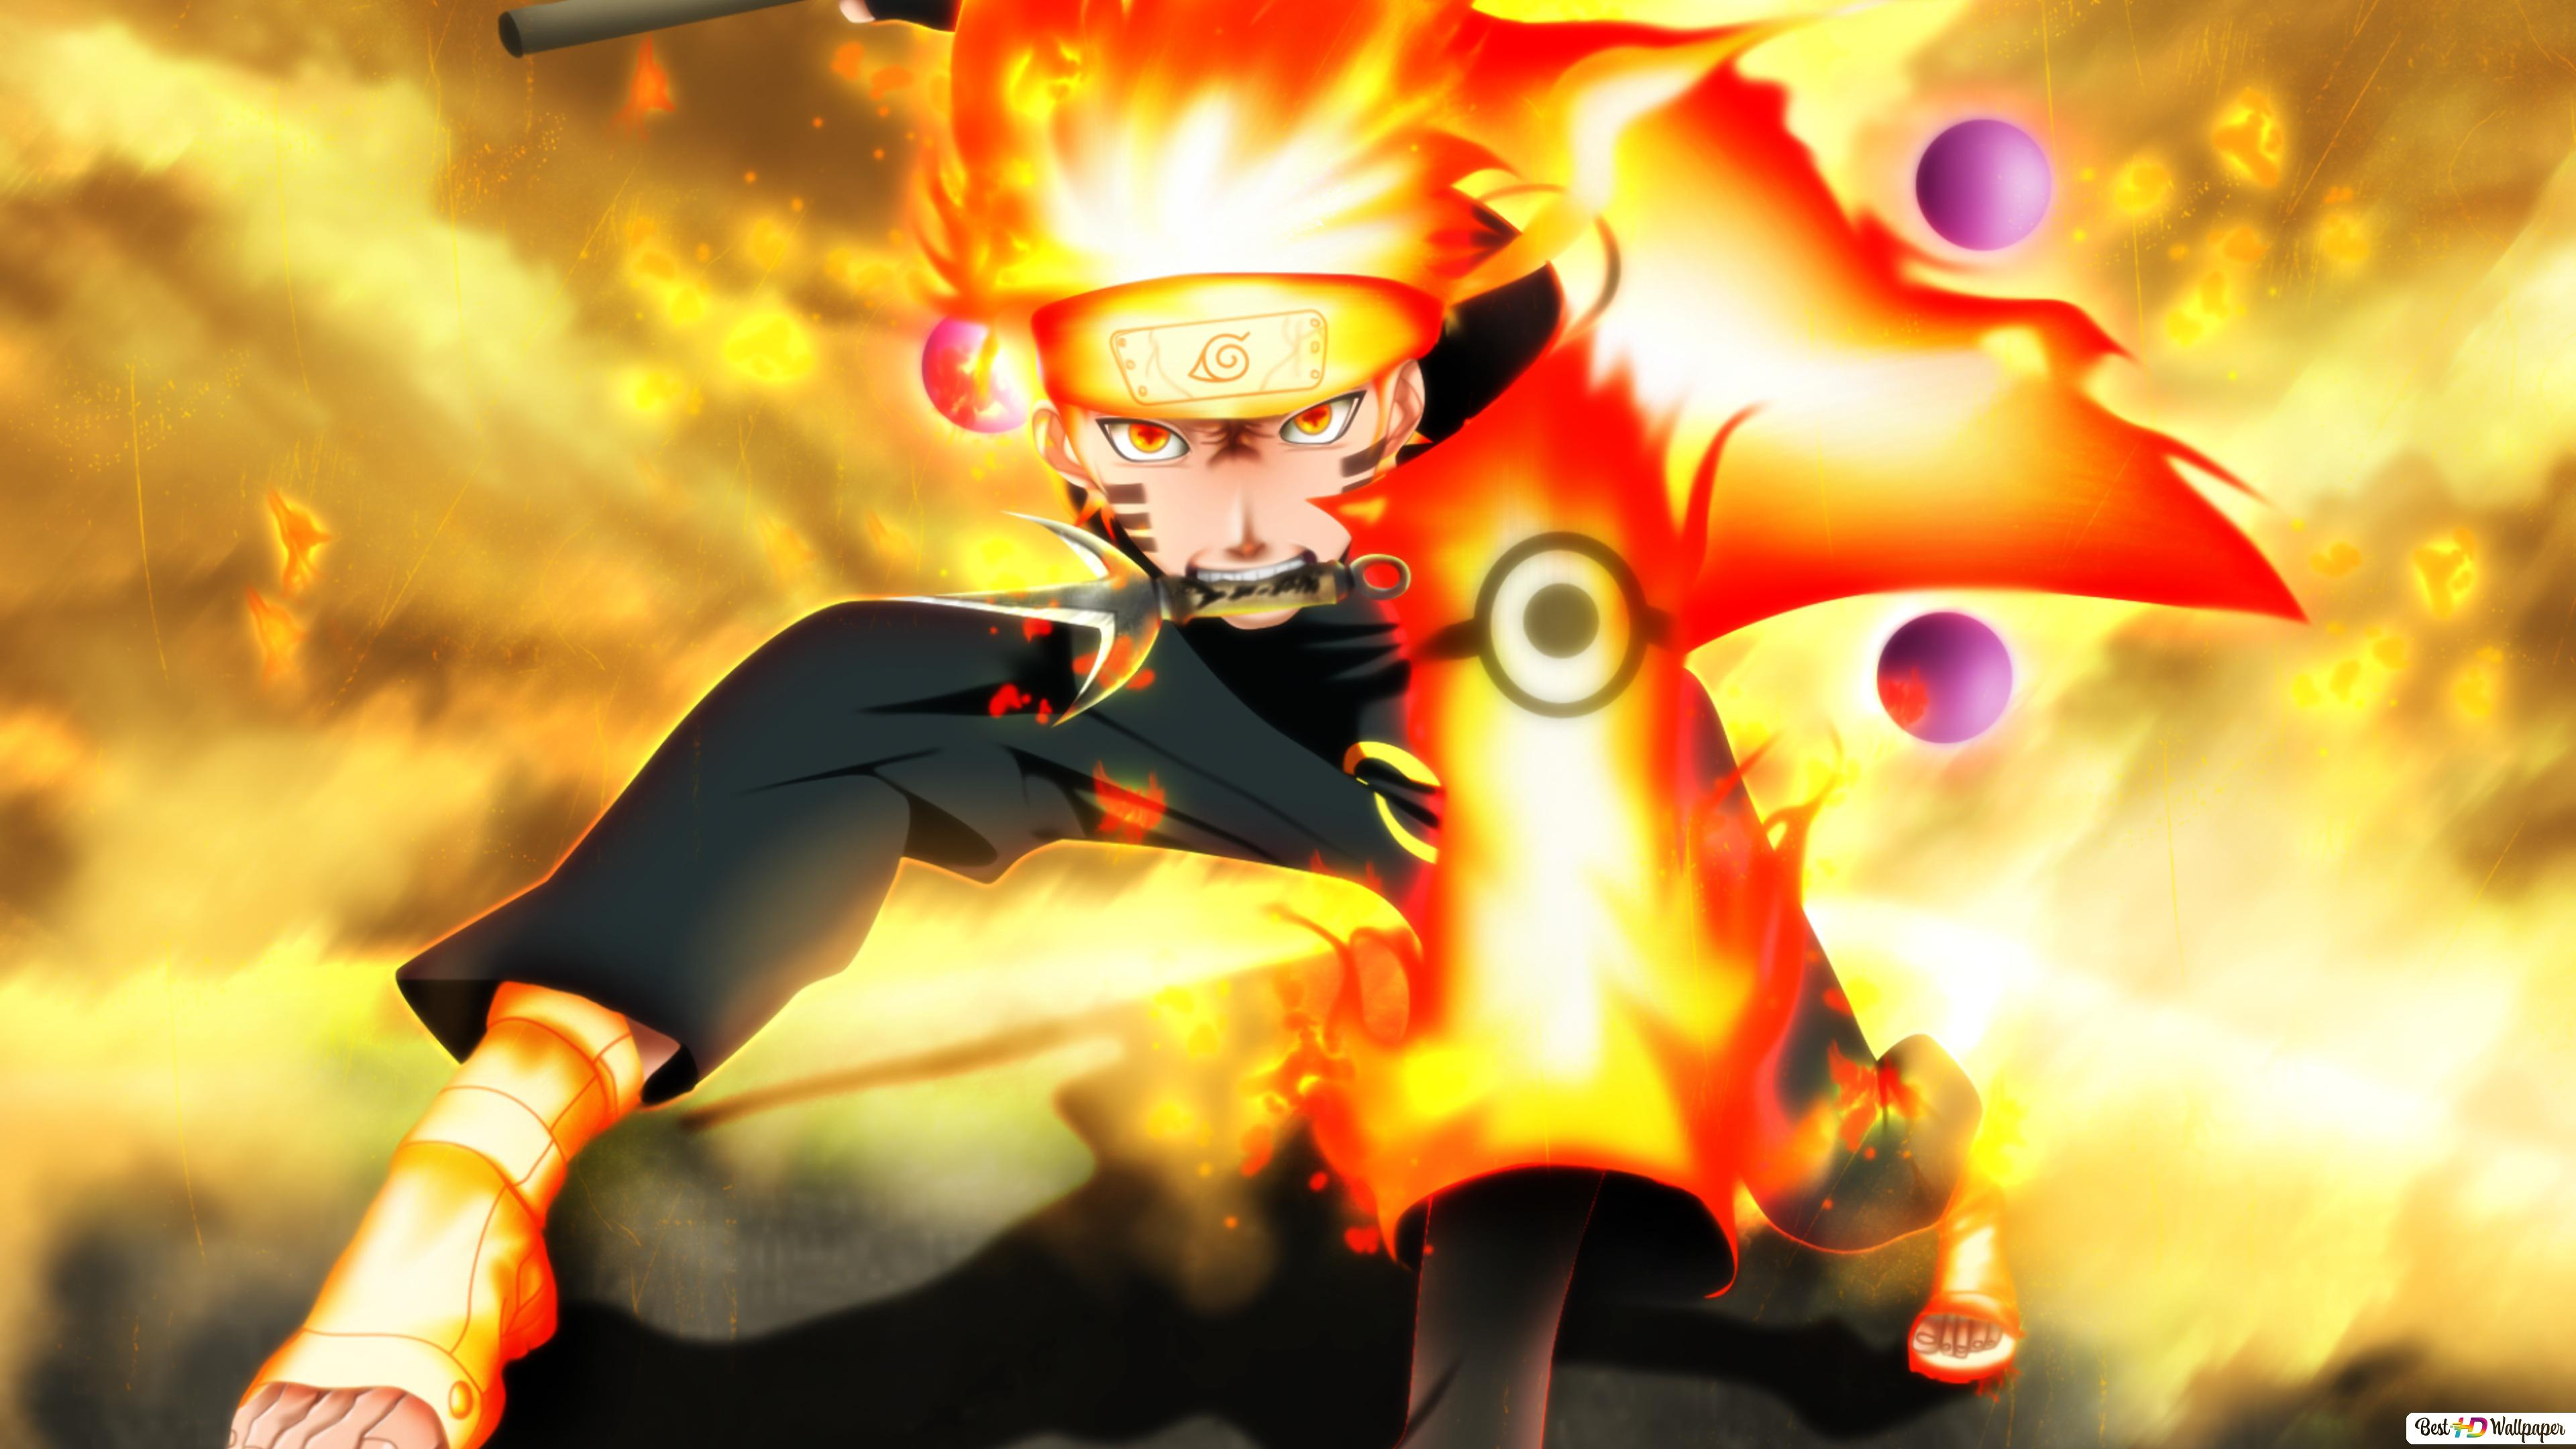 Naruto Uzumaki Sage Mode Hd Wallpaper Download